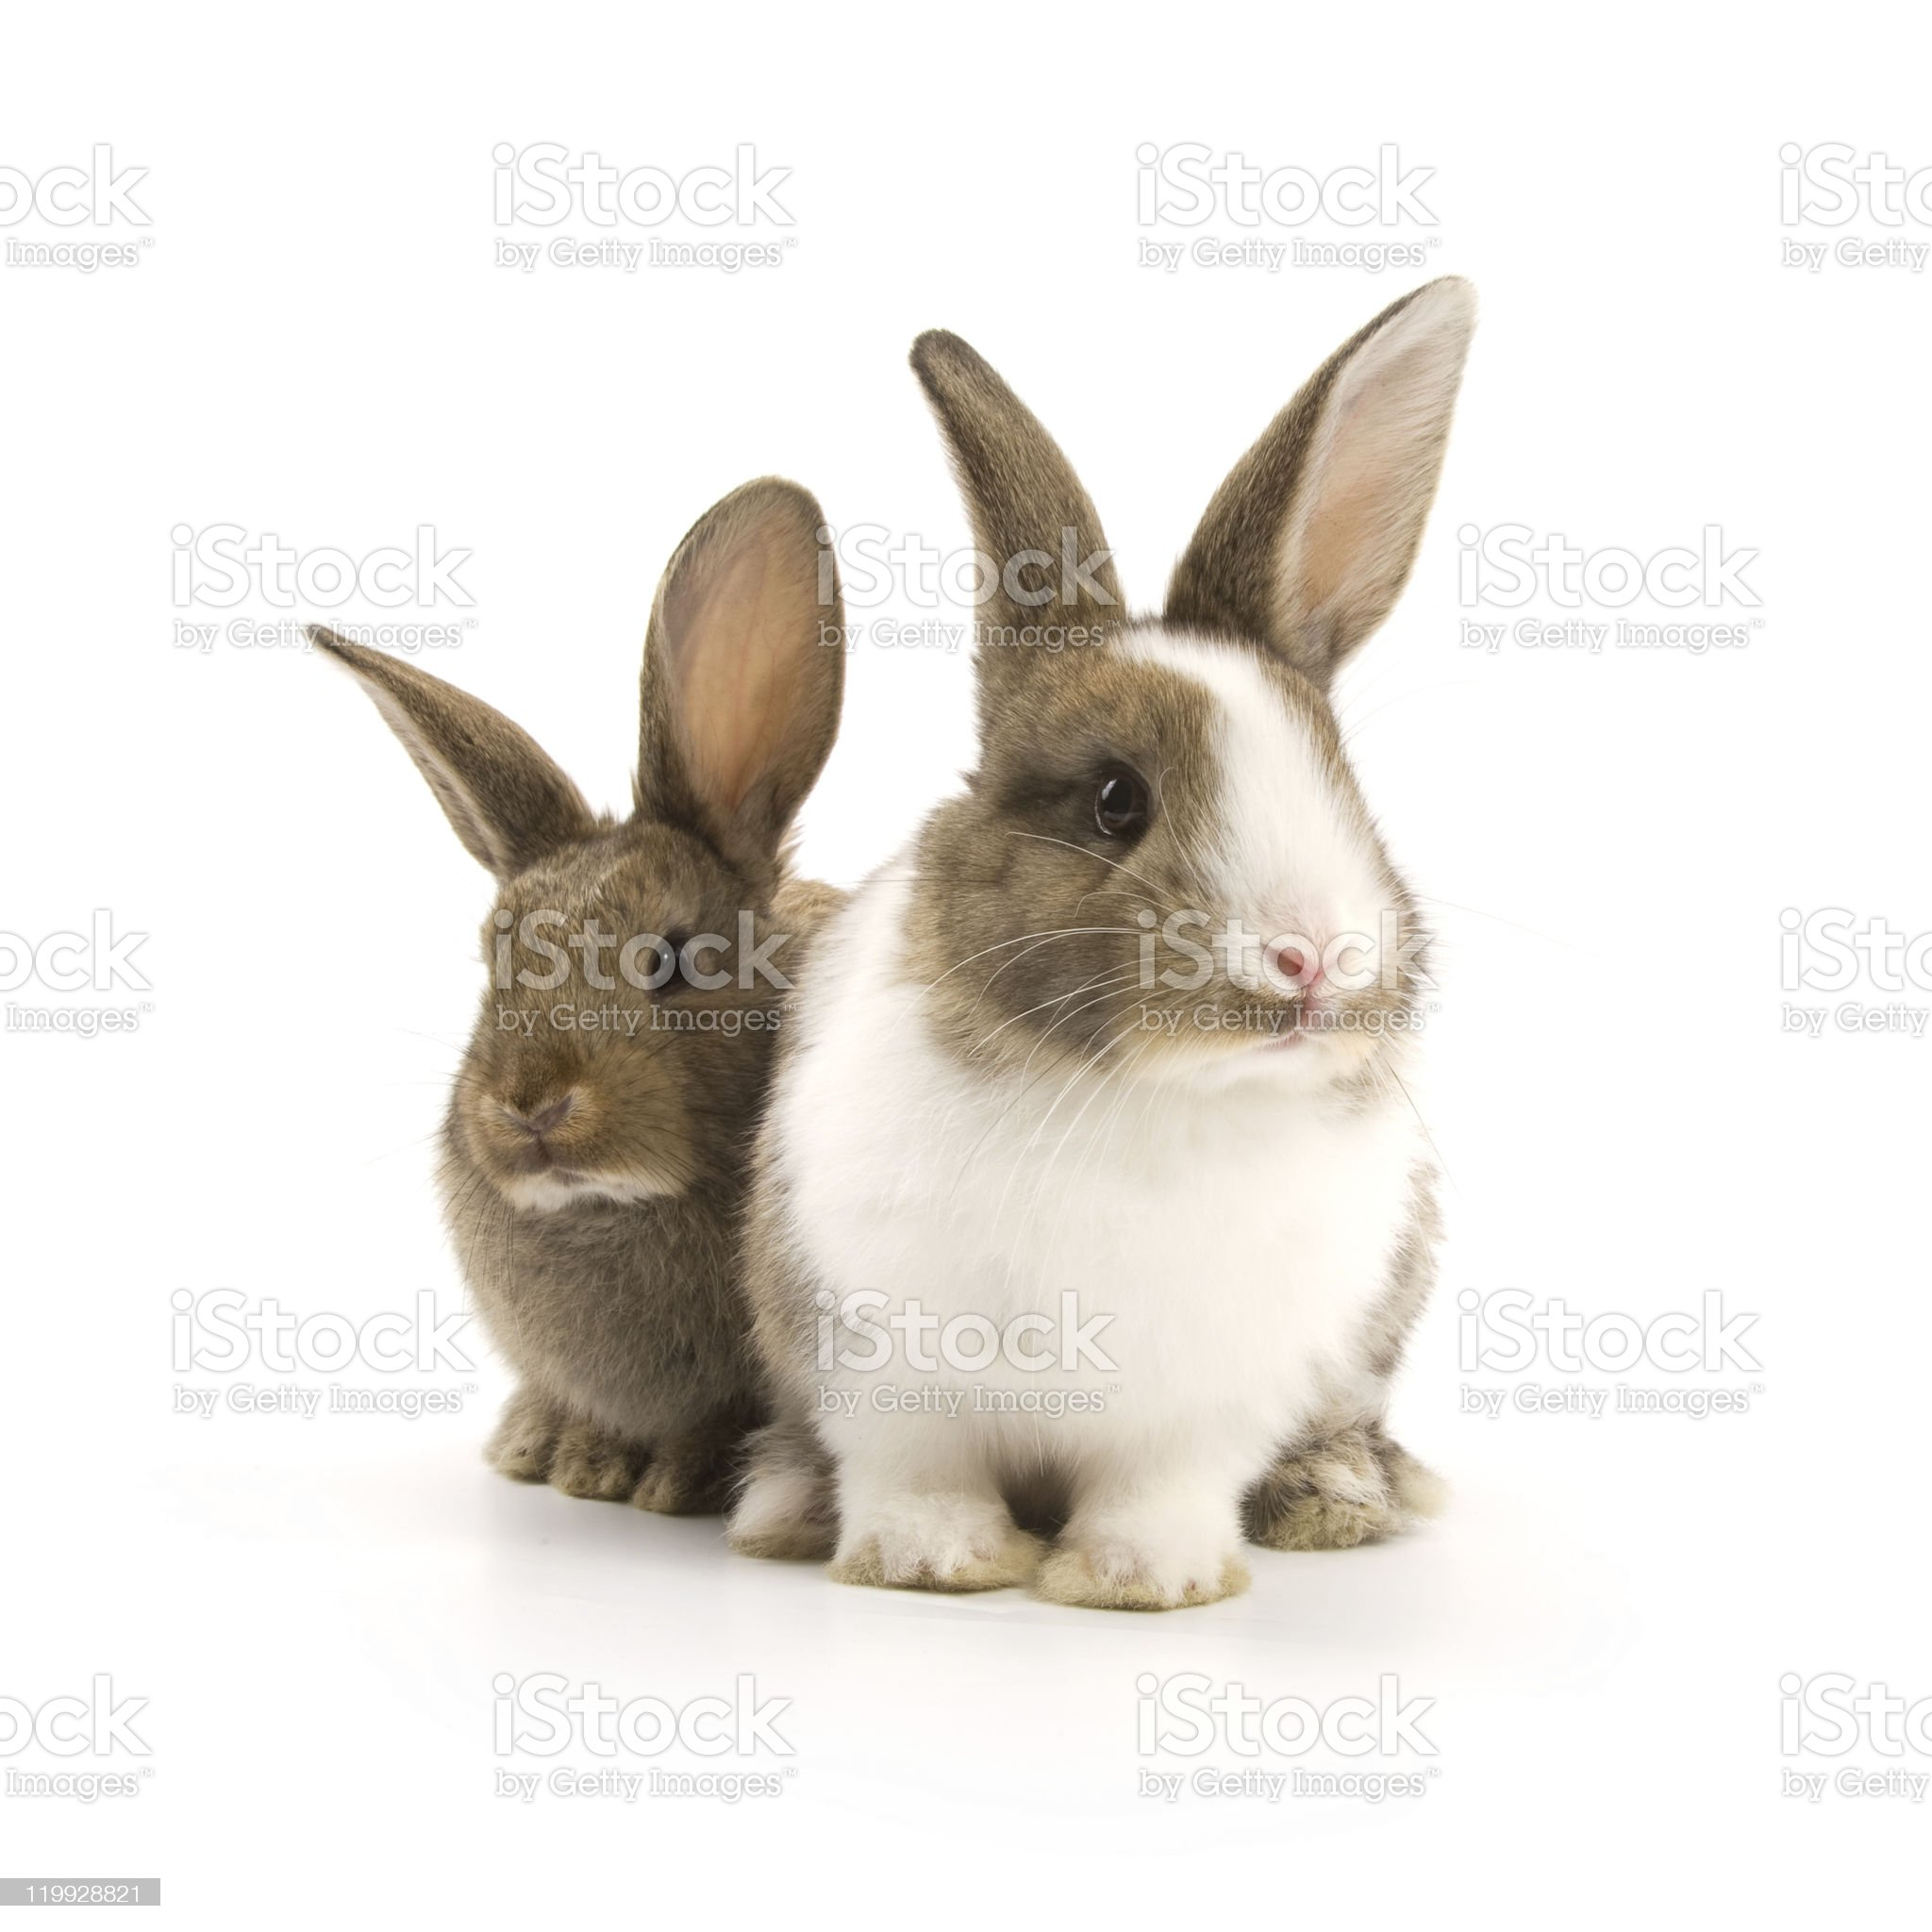 Bunnies royalty-free stock photo